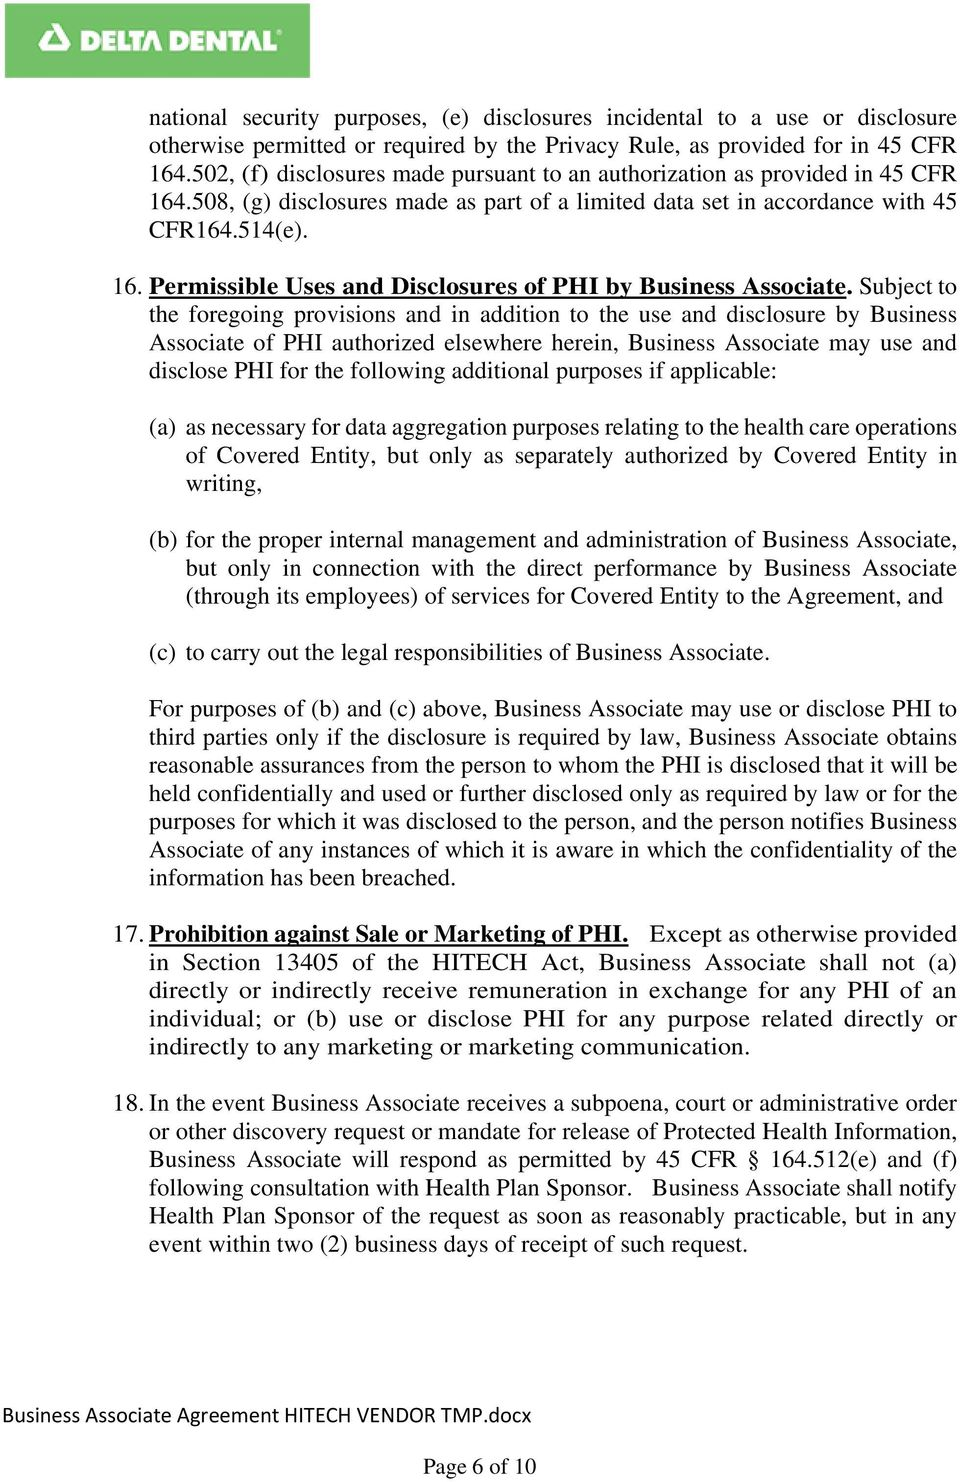 Subject to the foregoing provisions and in addition to the use and disclosure by Business Associate of PHI authorized elsewhere herein, Business Associate may use and disclose PHI for the following